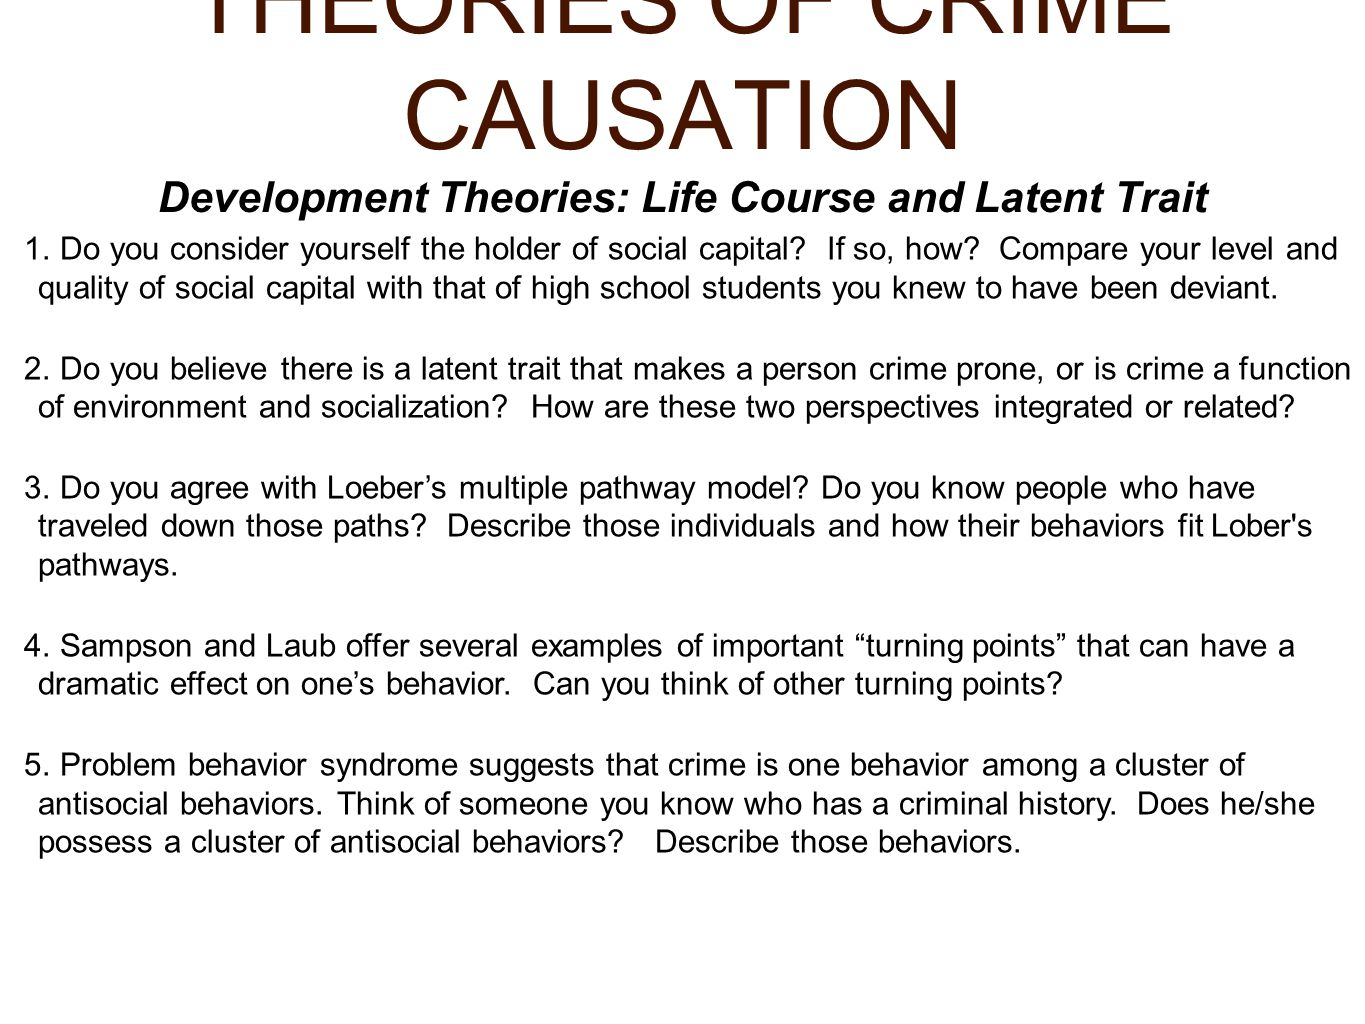 CRIME CAUSATION: PSYCHOLOGICAL THEORIES